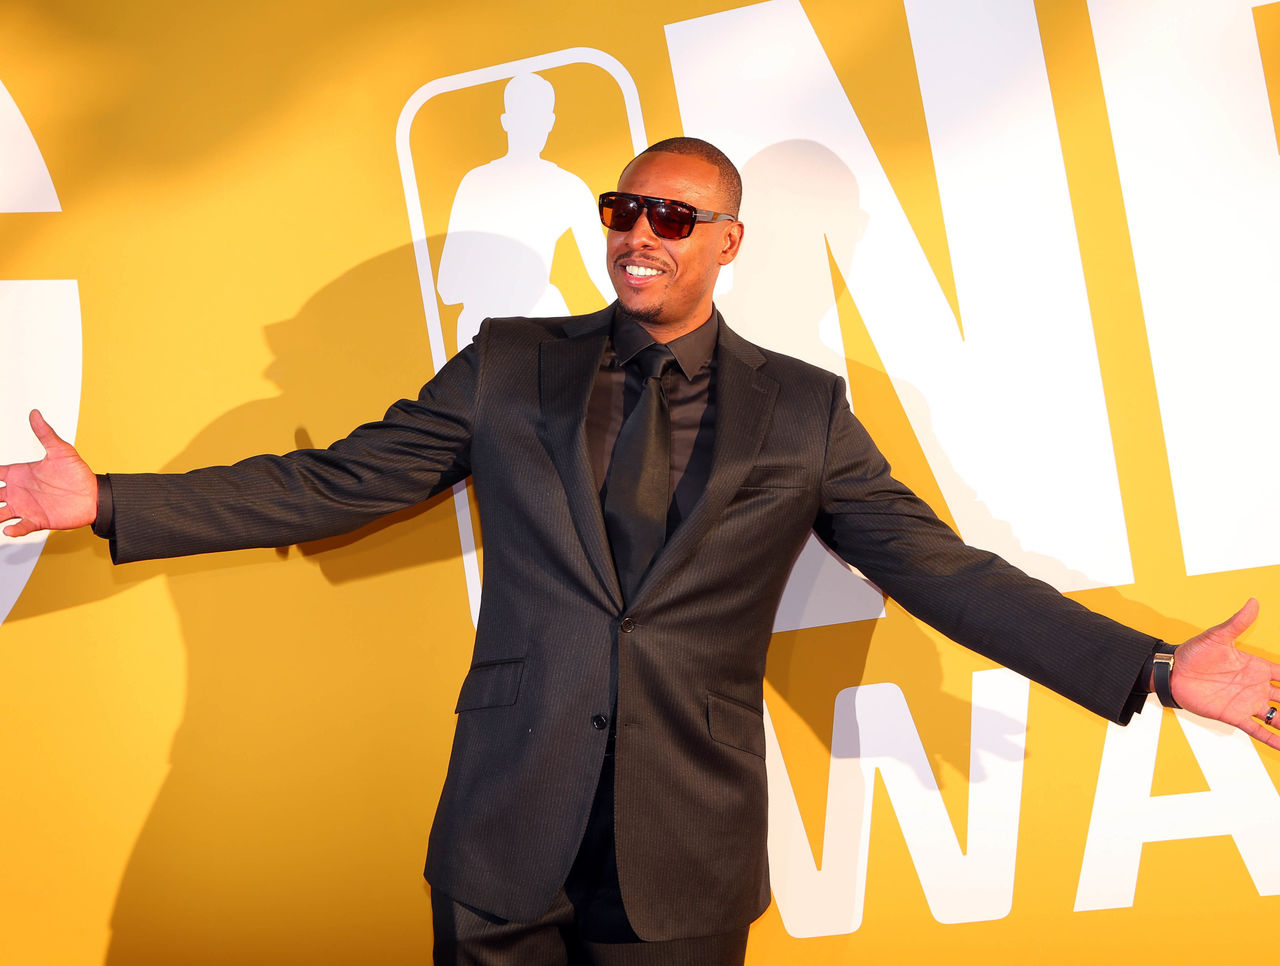 Cropped 2017 06 27t015857z 1886725813 nocid rtrmadp 3 nba awards show